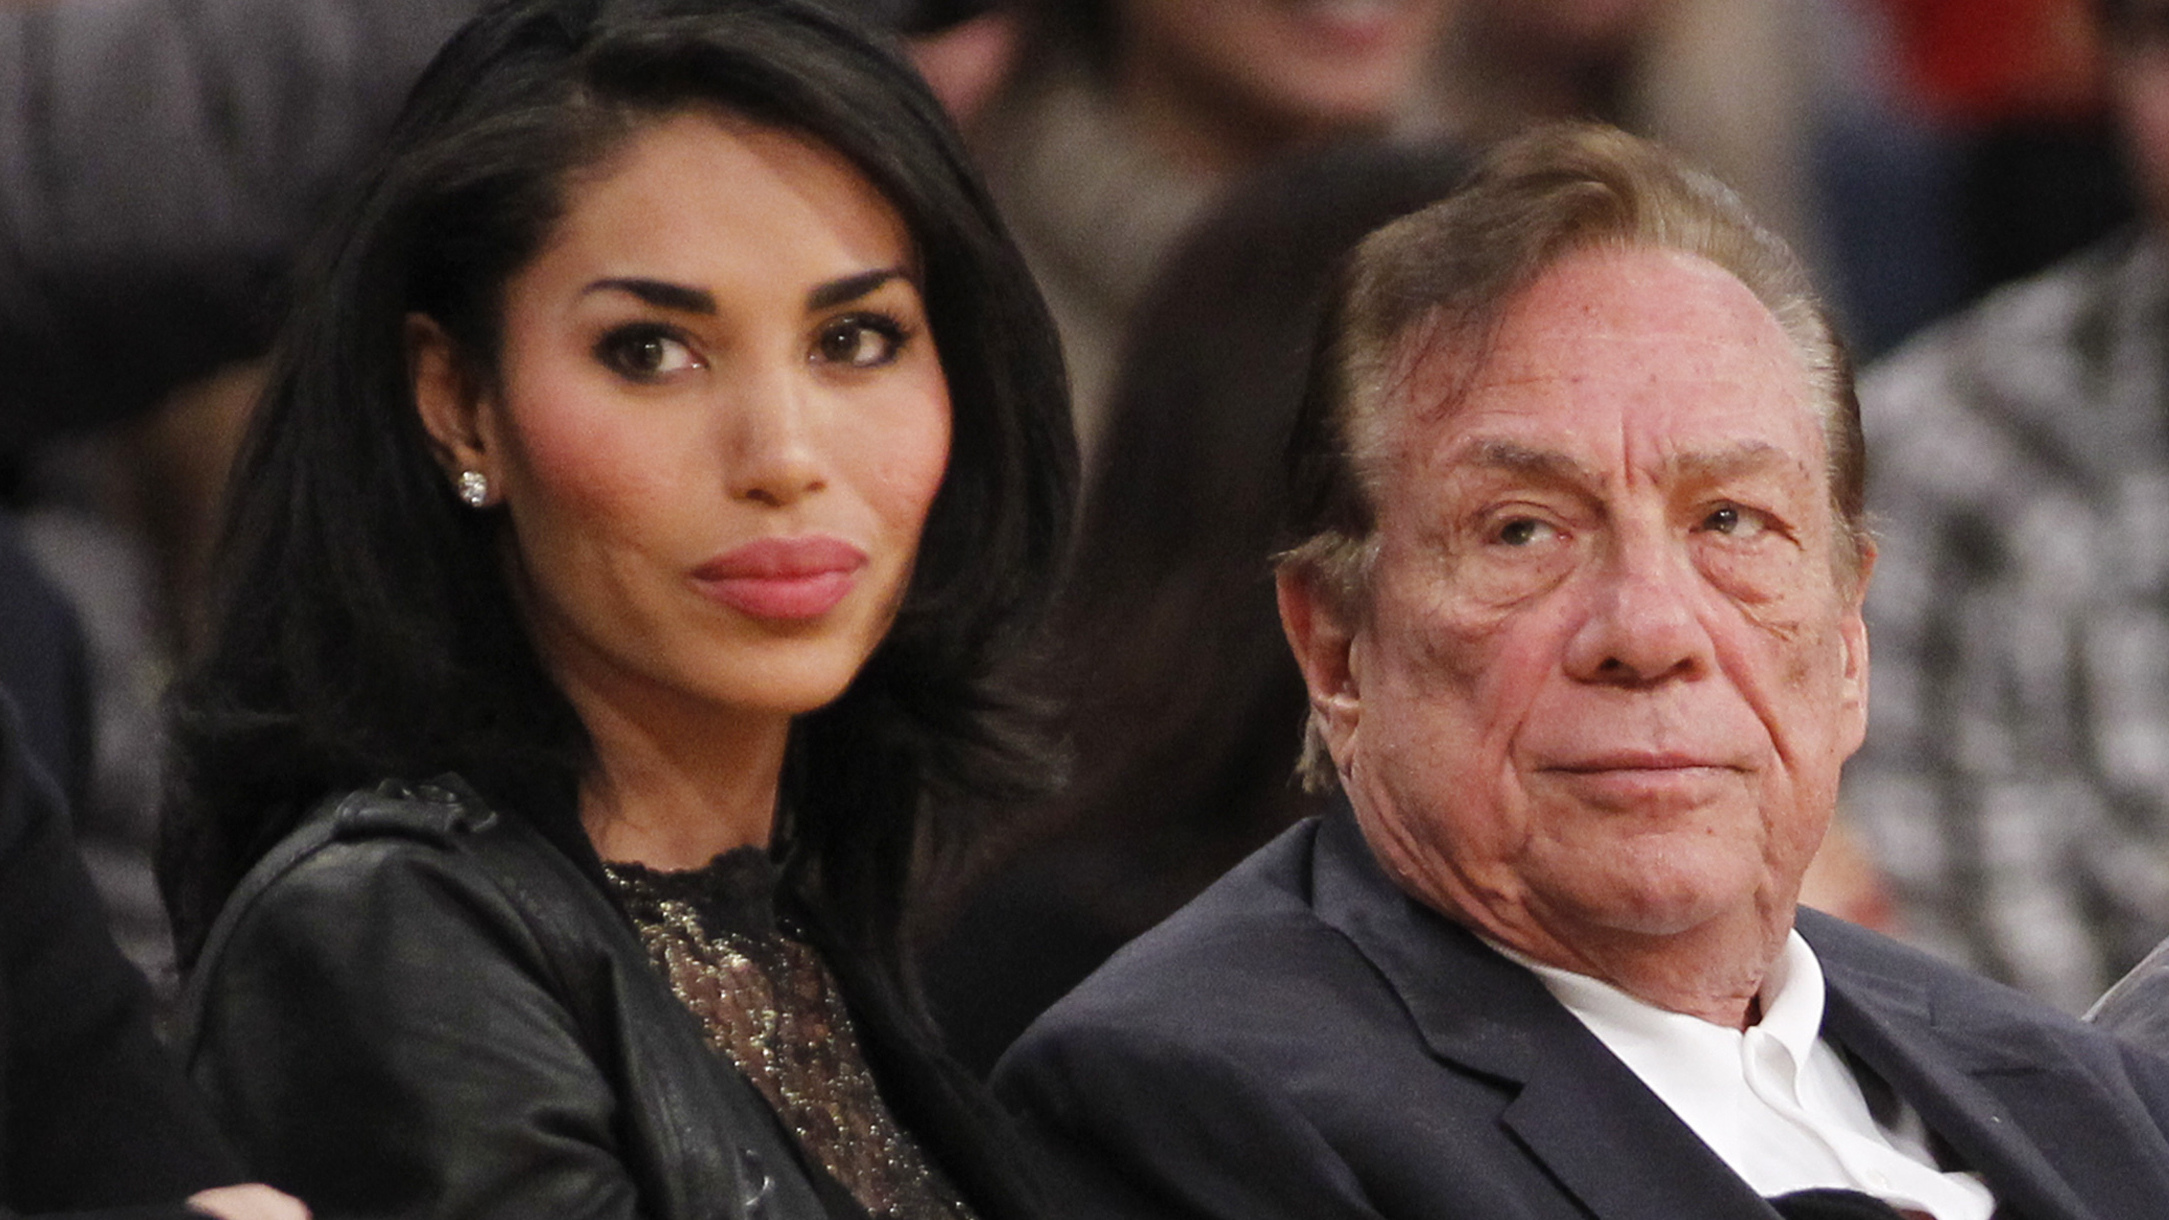 For Donald Sterling, A Spotty Reputation Further Tarnished